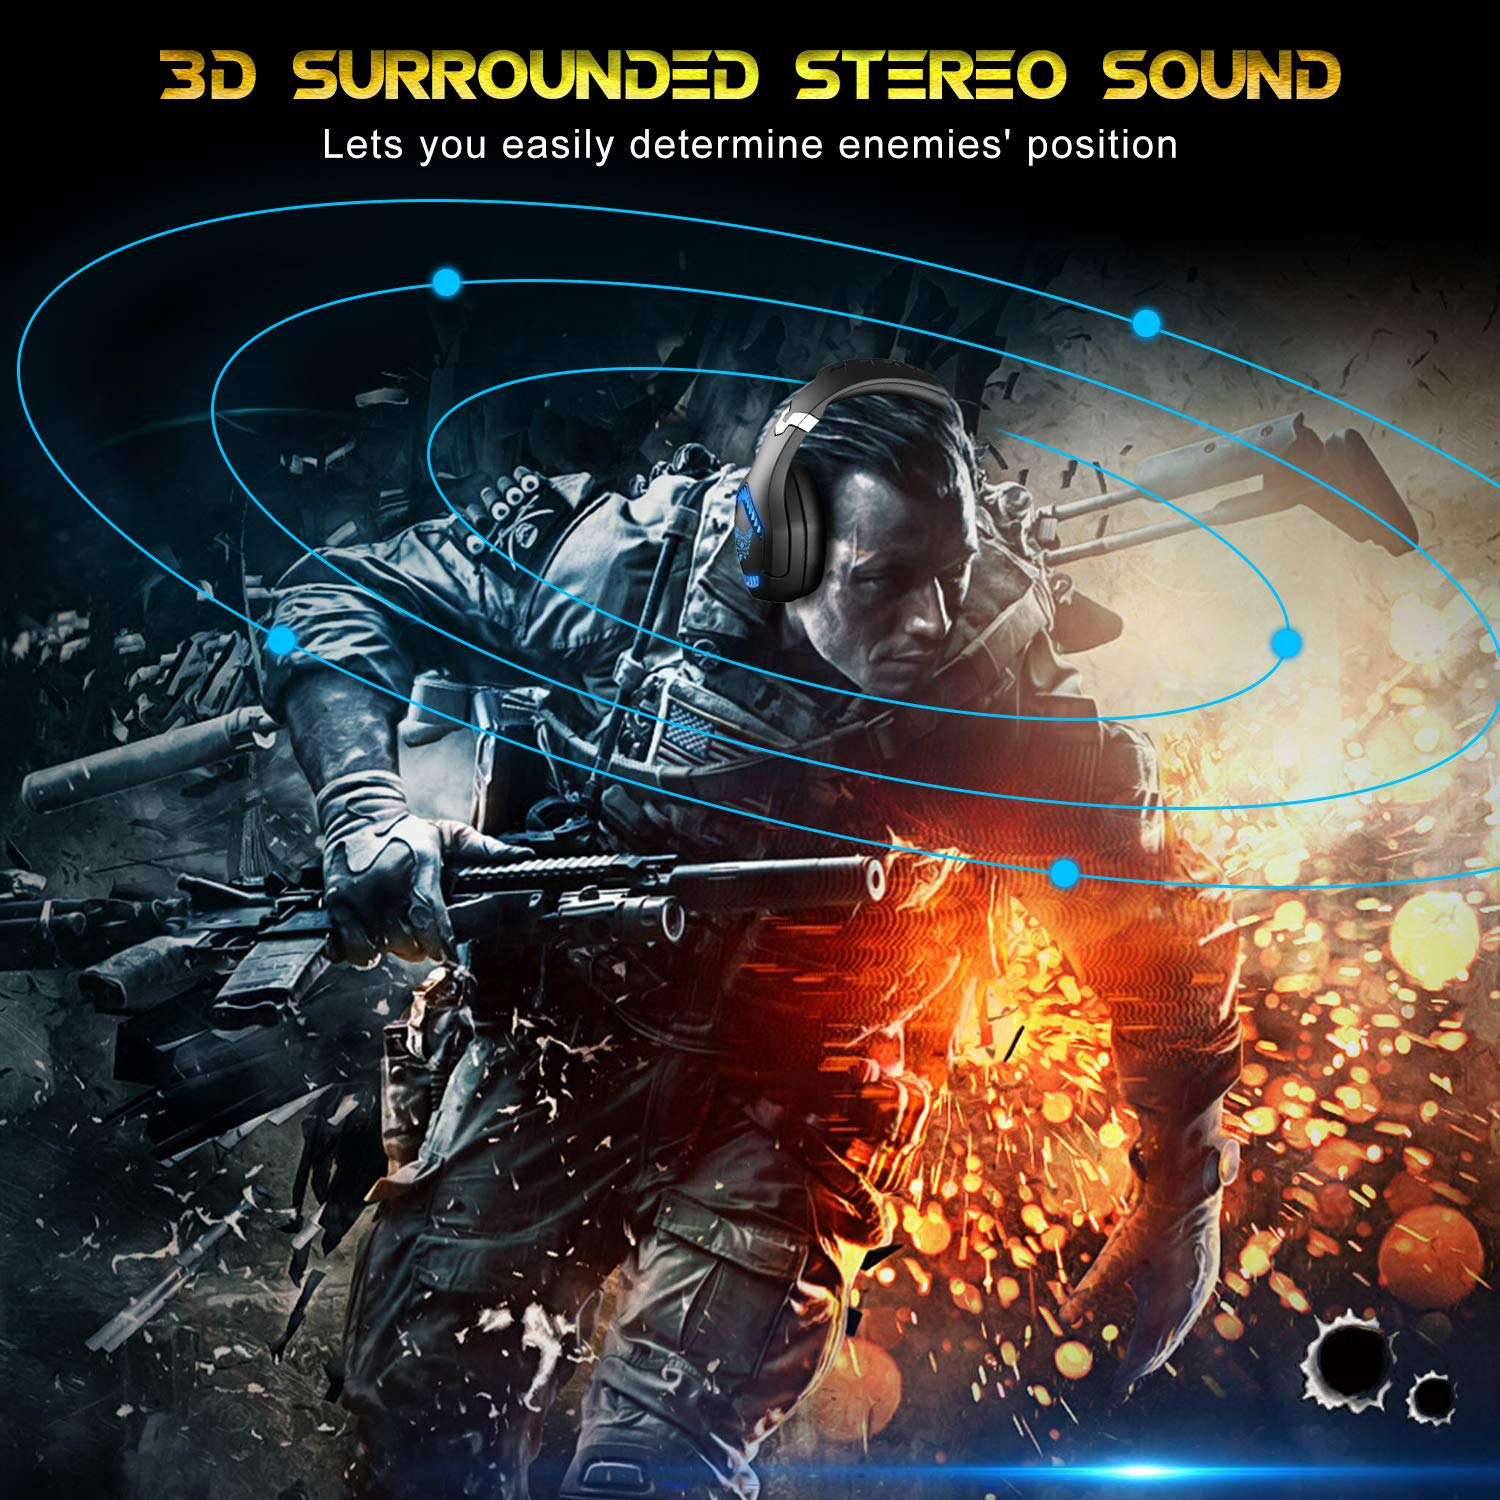 Stereo Gaming Headset, DIOWING,【Upgraded 7.1 Bass Surround Sound】Over Ear Headphones with Mic for PS4, PC, Xbox One Controller, LED Light, Soft Memory Earmuffs for Laptop Mac Nintendo Switch Games by DIOWING (Image #2)